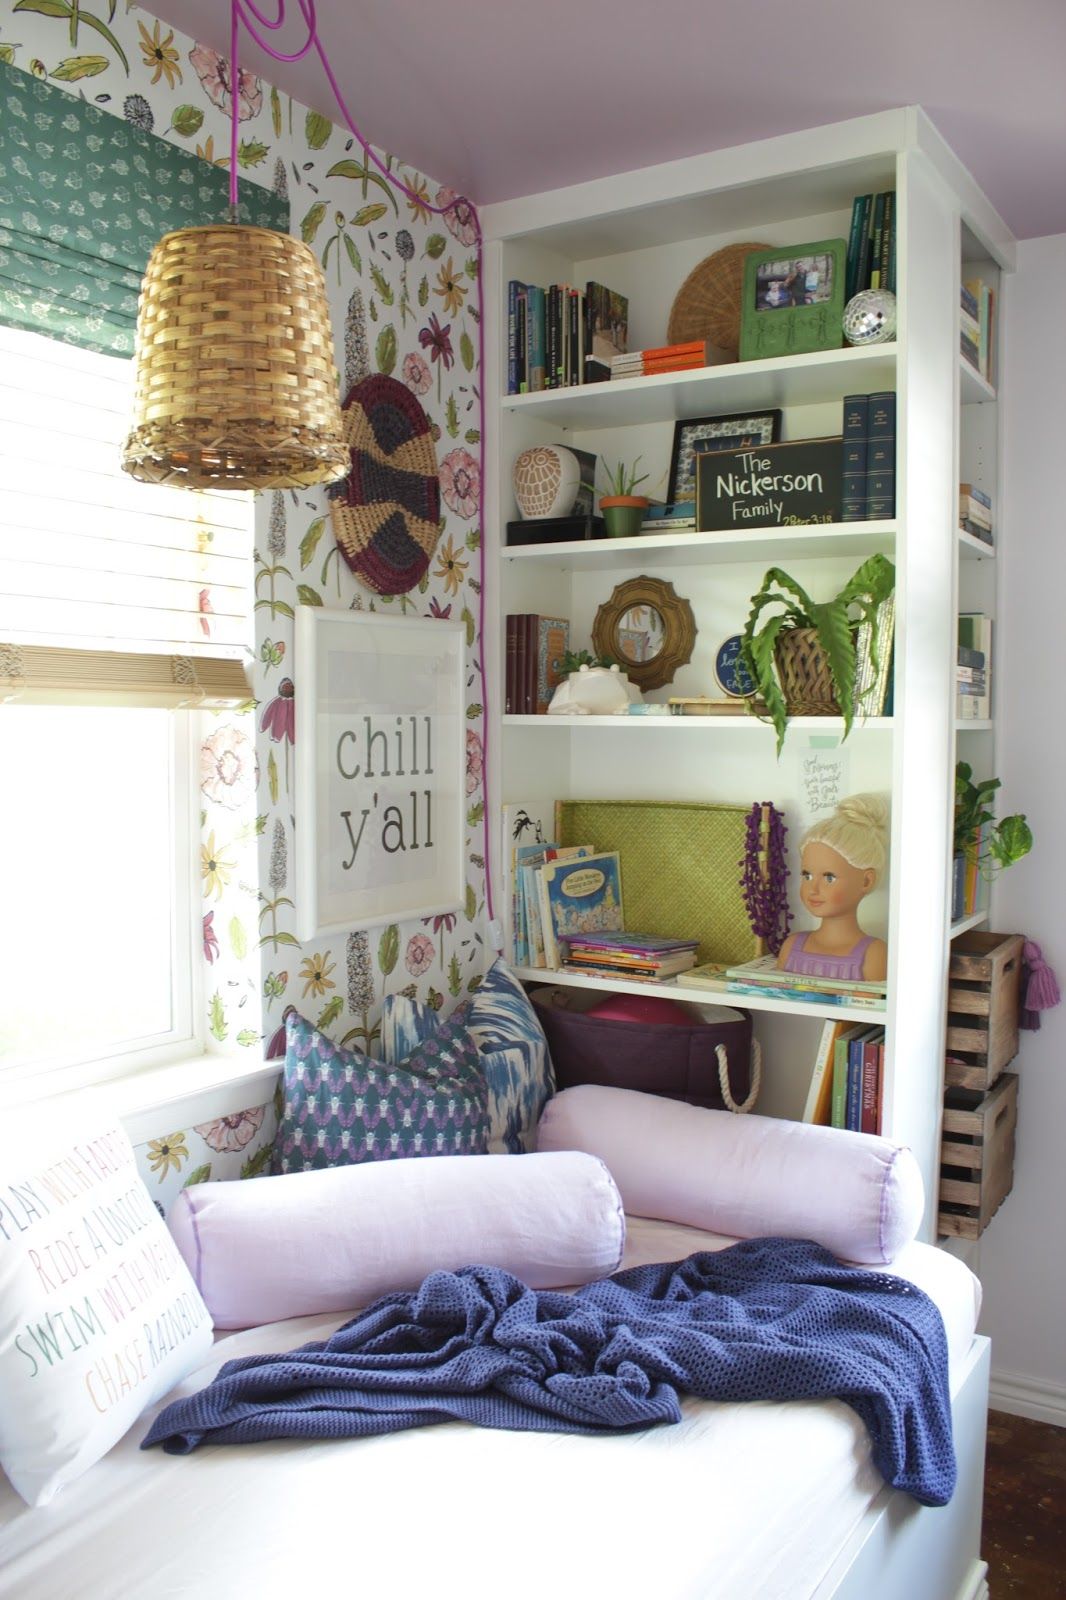 We transformed this space with built ins using Ikea bookshelves. This daybed space is so versitile and provides so much storage.